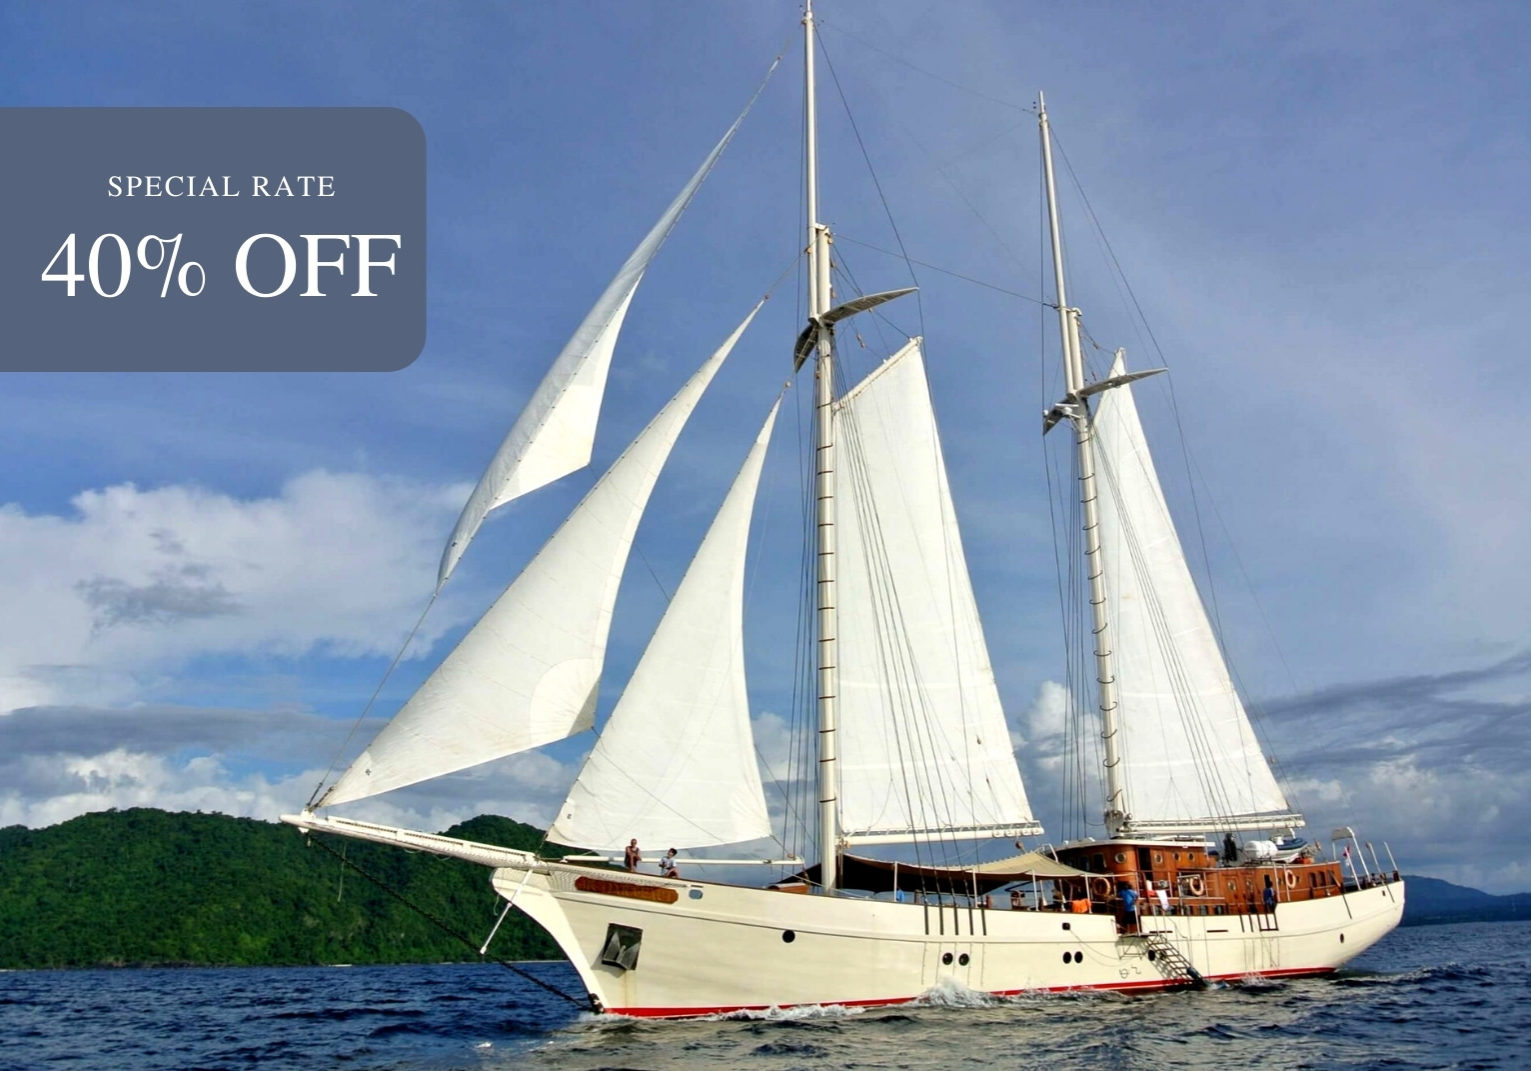 Mutiara laut liveaboard | Special Rate 40% off | Hello Flores